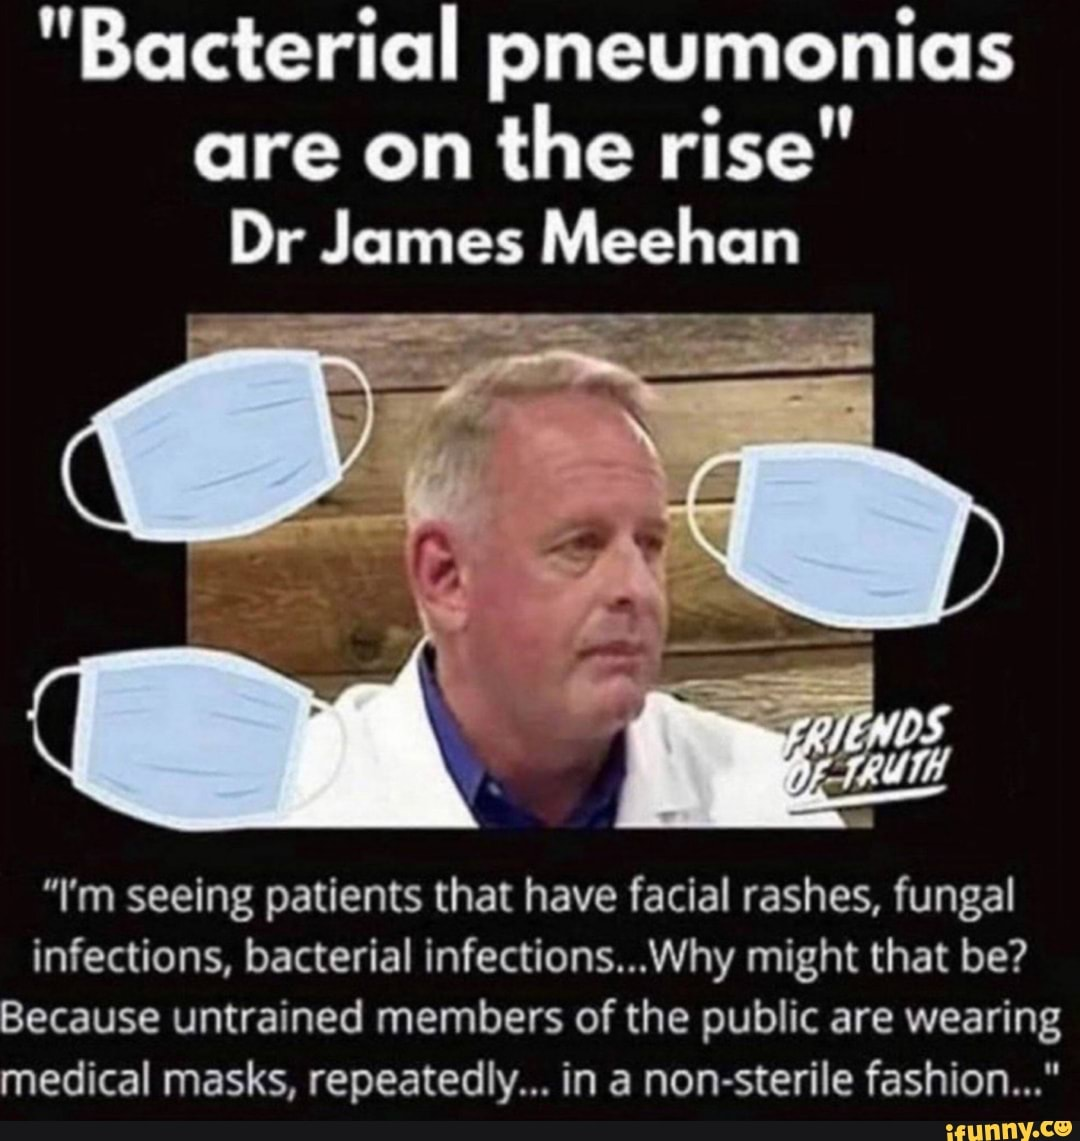 """Bacterial pneumonias are on the rise"""" Dr James Meehan """"I'm seeing patients  that have facial rashes, fungal infections, bacterial infections...Why  might that be? Because untrained members of the public are wearing medical"""